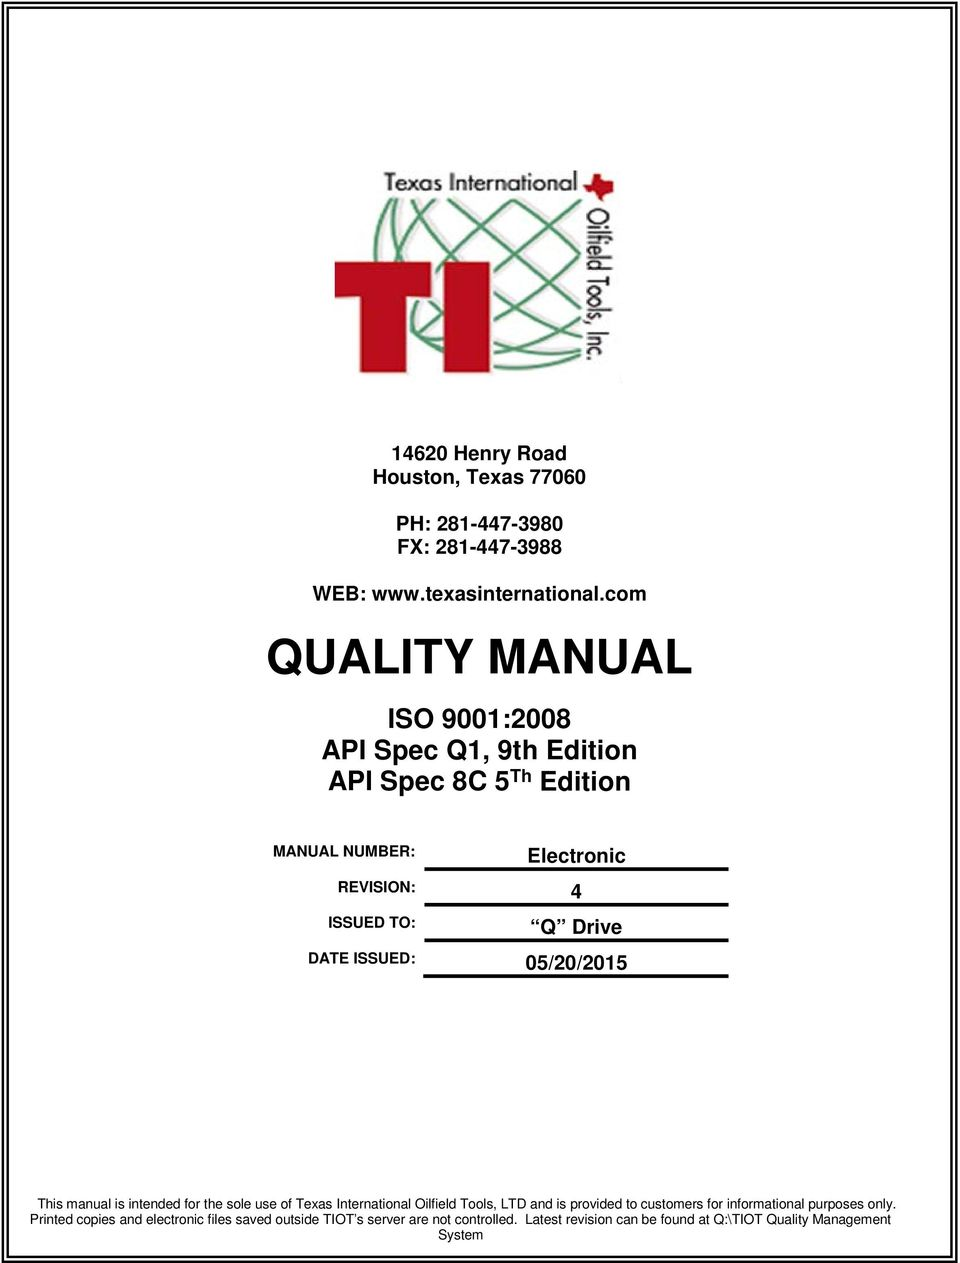 DATE ISSUED: 05/20/2015 This manual is intended for the sole use of Texas International Oilfield Tools, LTD and is provided to customers